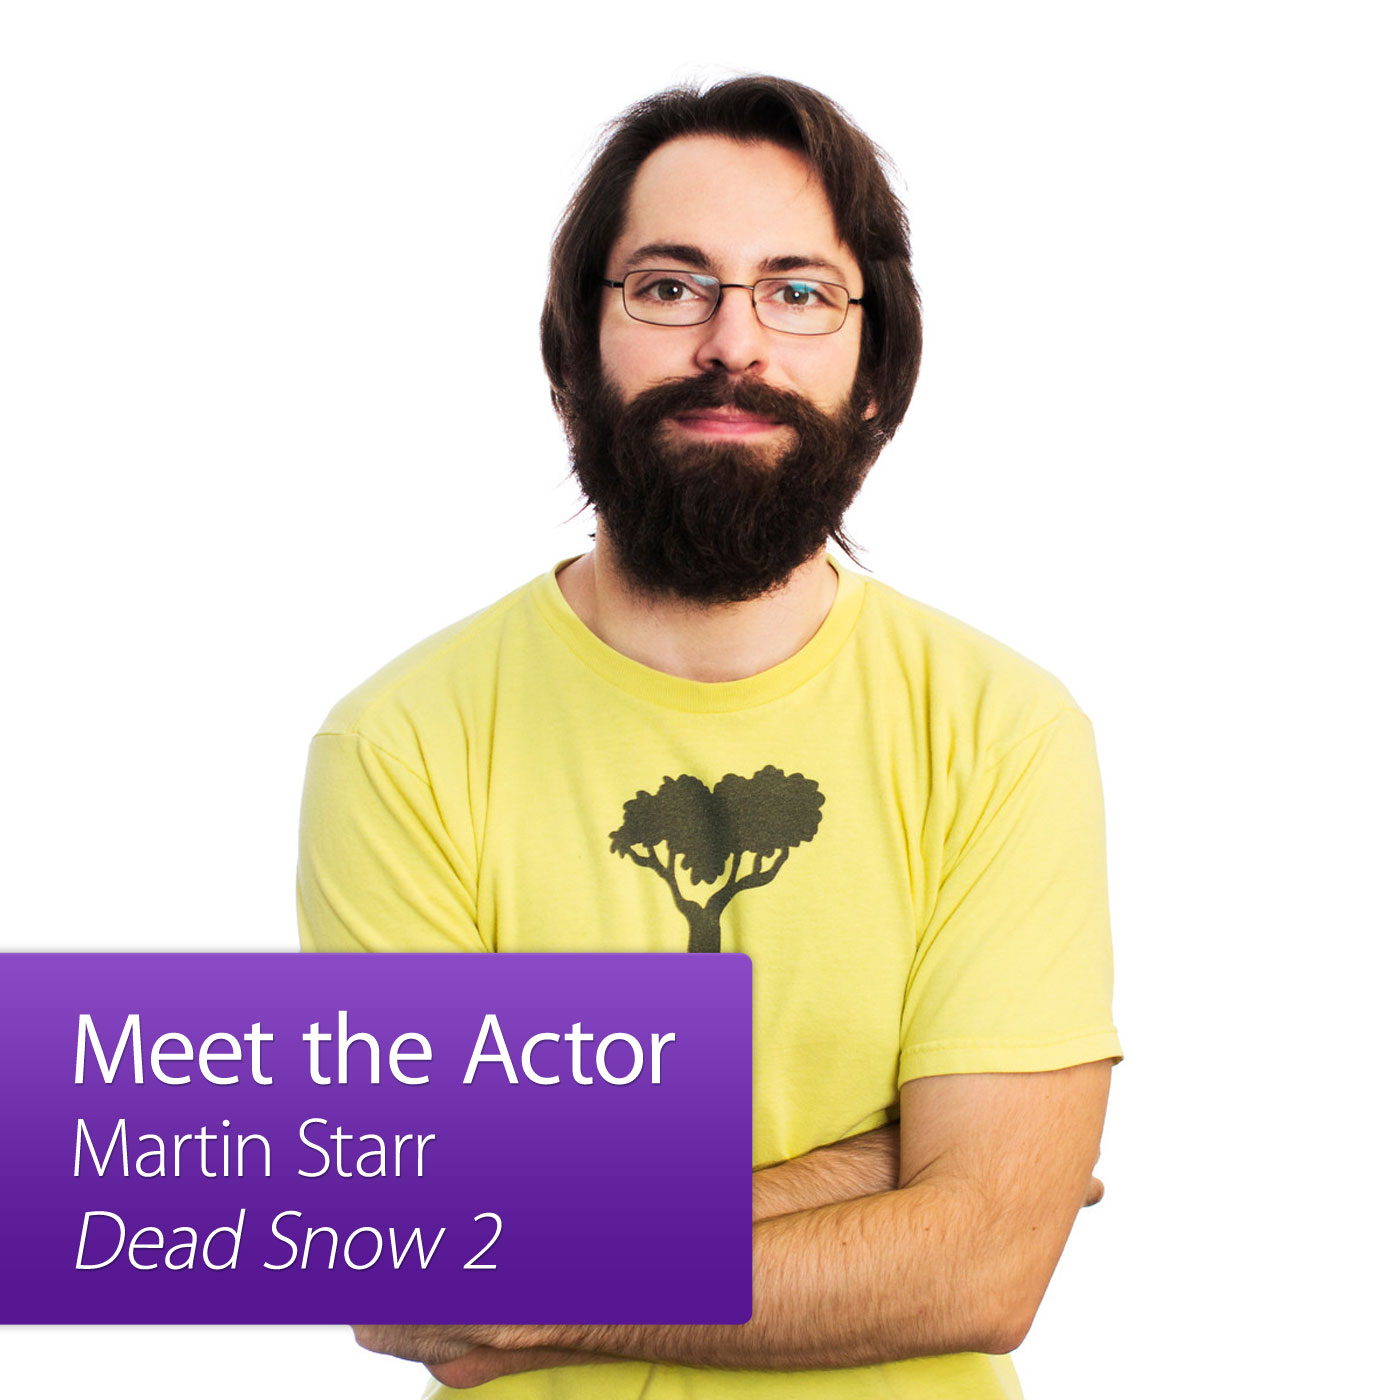 Martin Starr: Meet the Actor